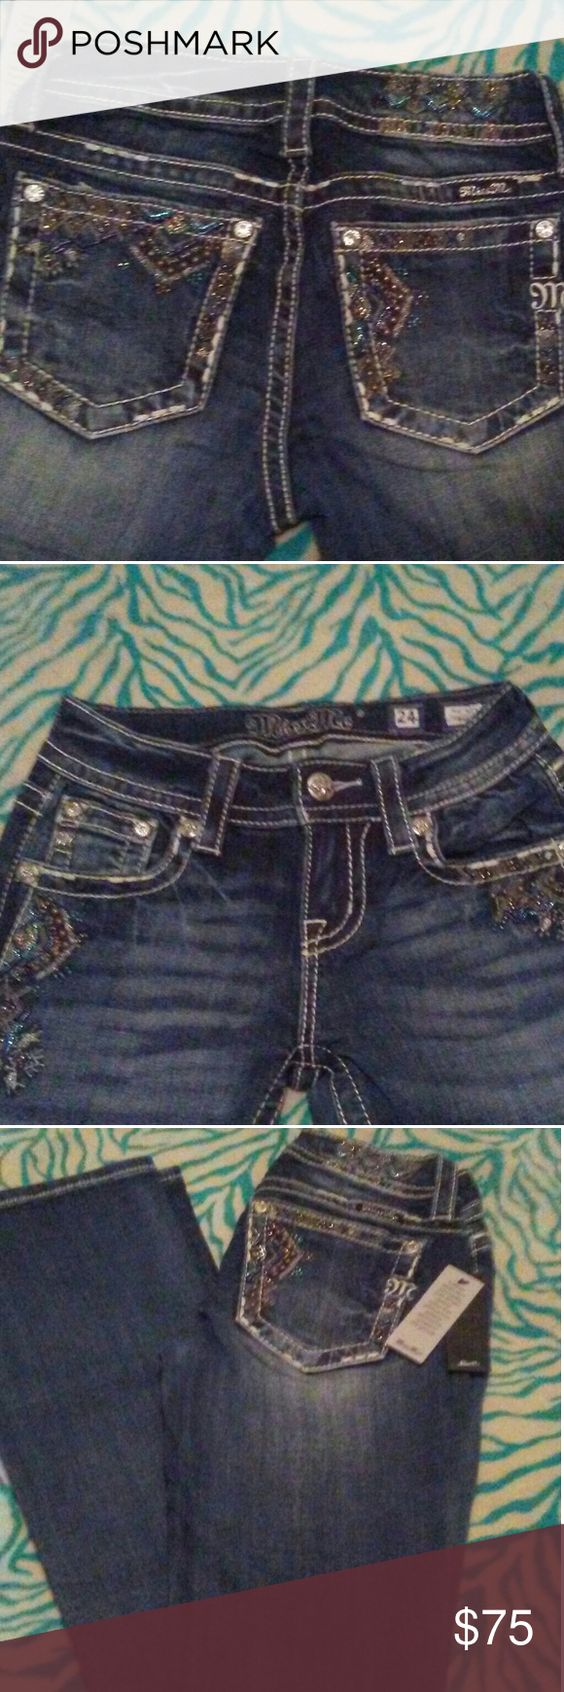 Miss me jeans Brand new miss me jeans!!! Miss Me Jeans Boot Cut